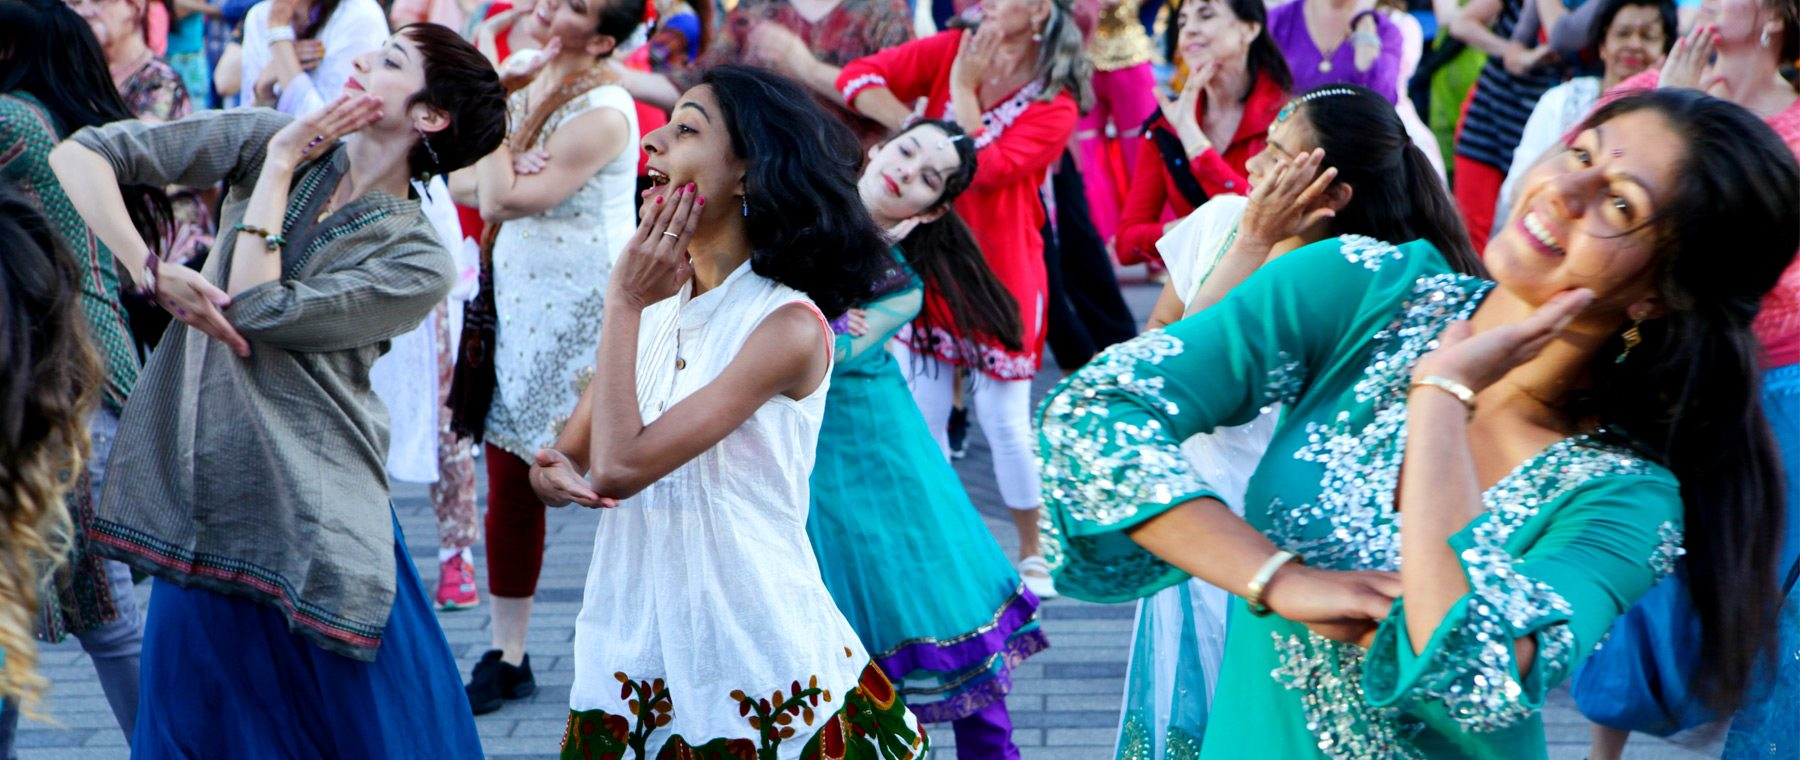 Welcome to Wollywood — 150 gather this weekend for free Bollywood-inspired dance show